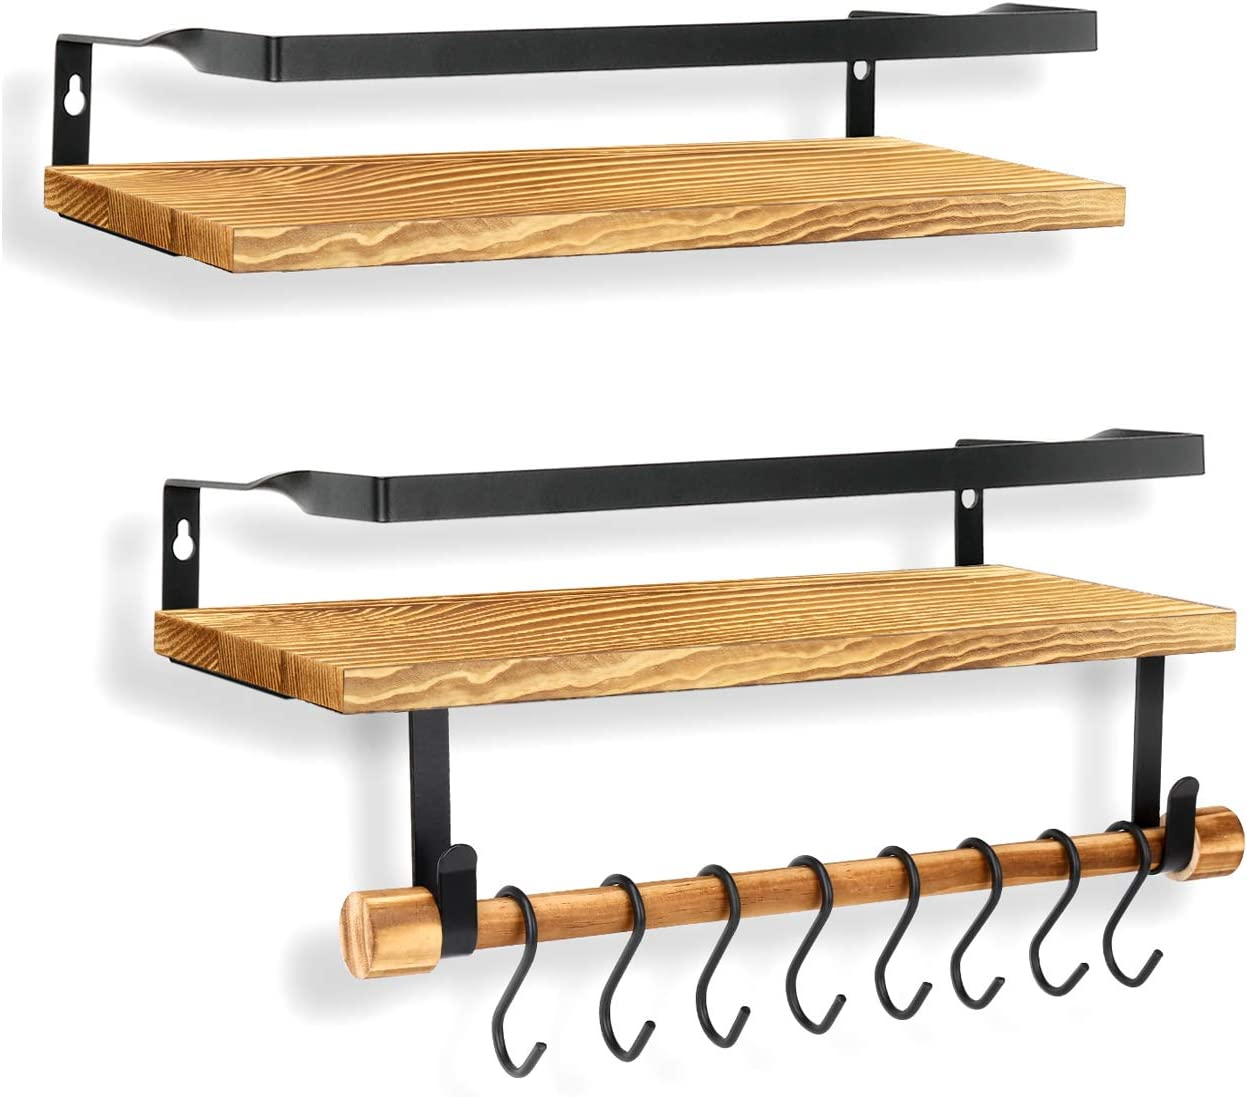 Hcoolfly Floating Shelves Wall Mounted, Rustic Solid Wood Wall Shelf Set of 2 for Bathroom, Kitchen, Living Room, Bedroom, Office